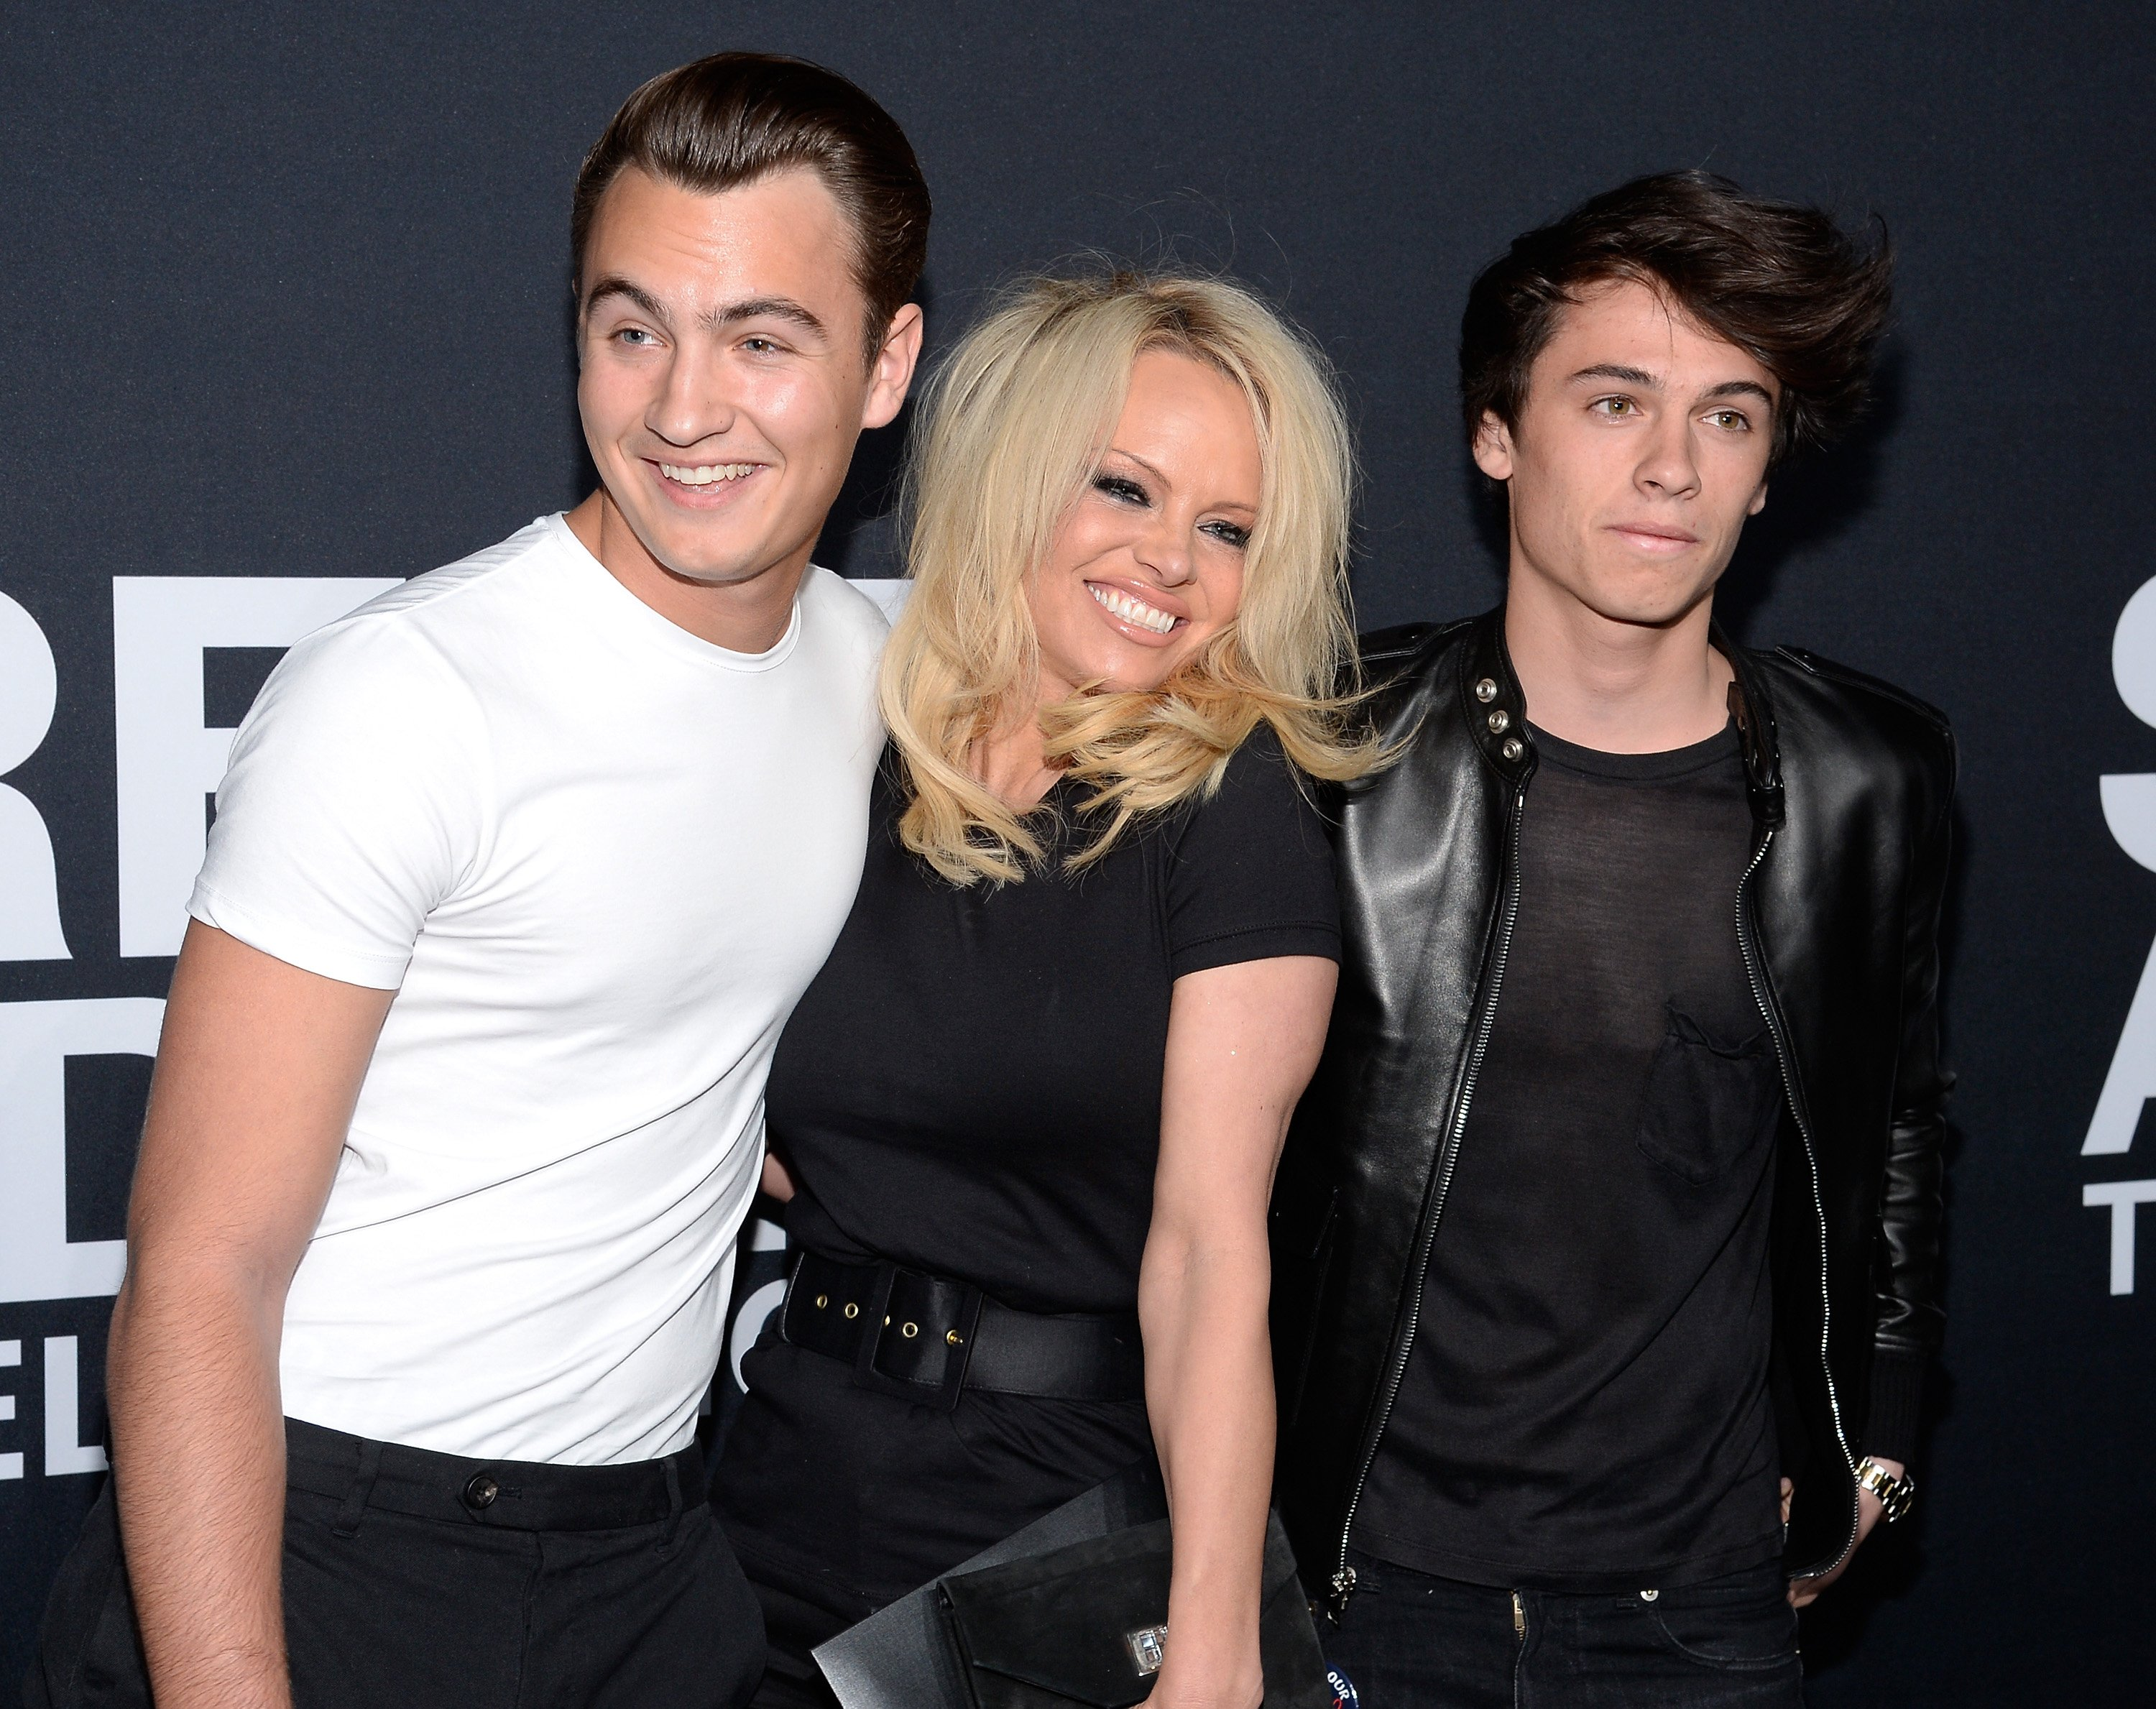 Pamela Anderson, Brandon Lee, and Dylan Lee | Photo: Getty Images